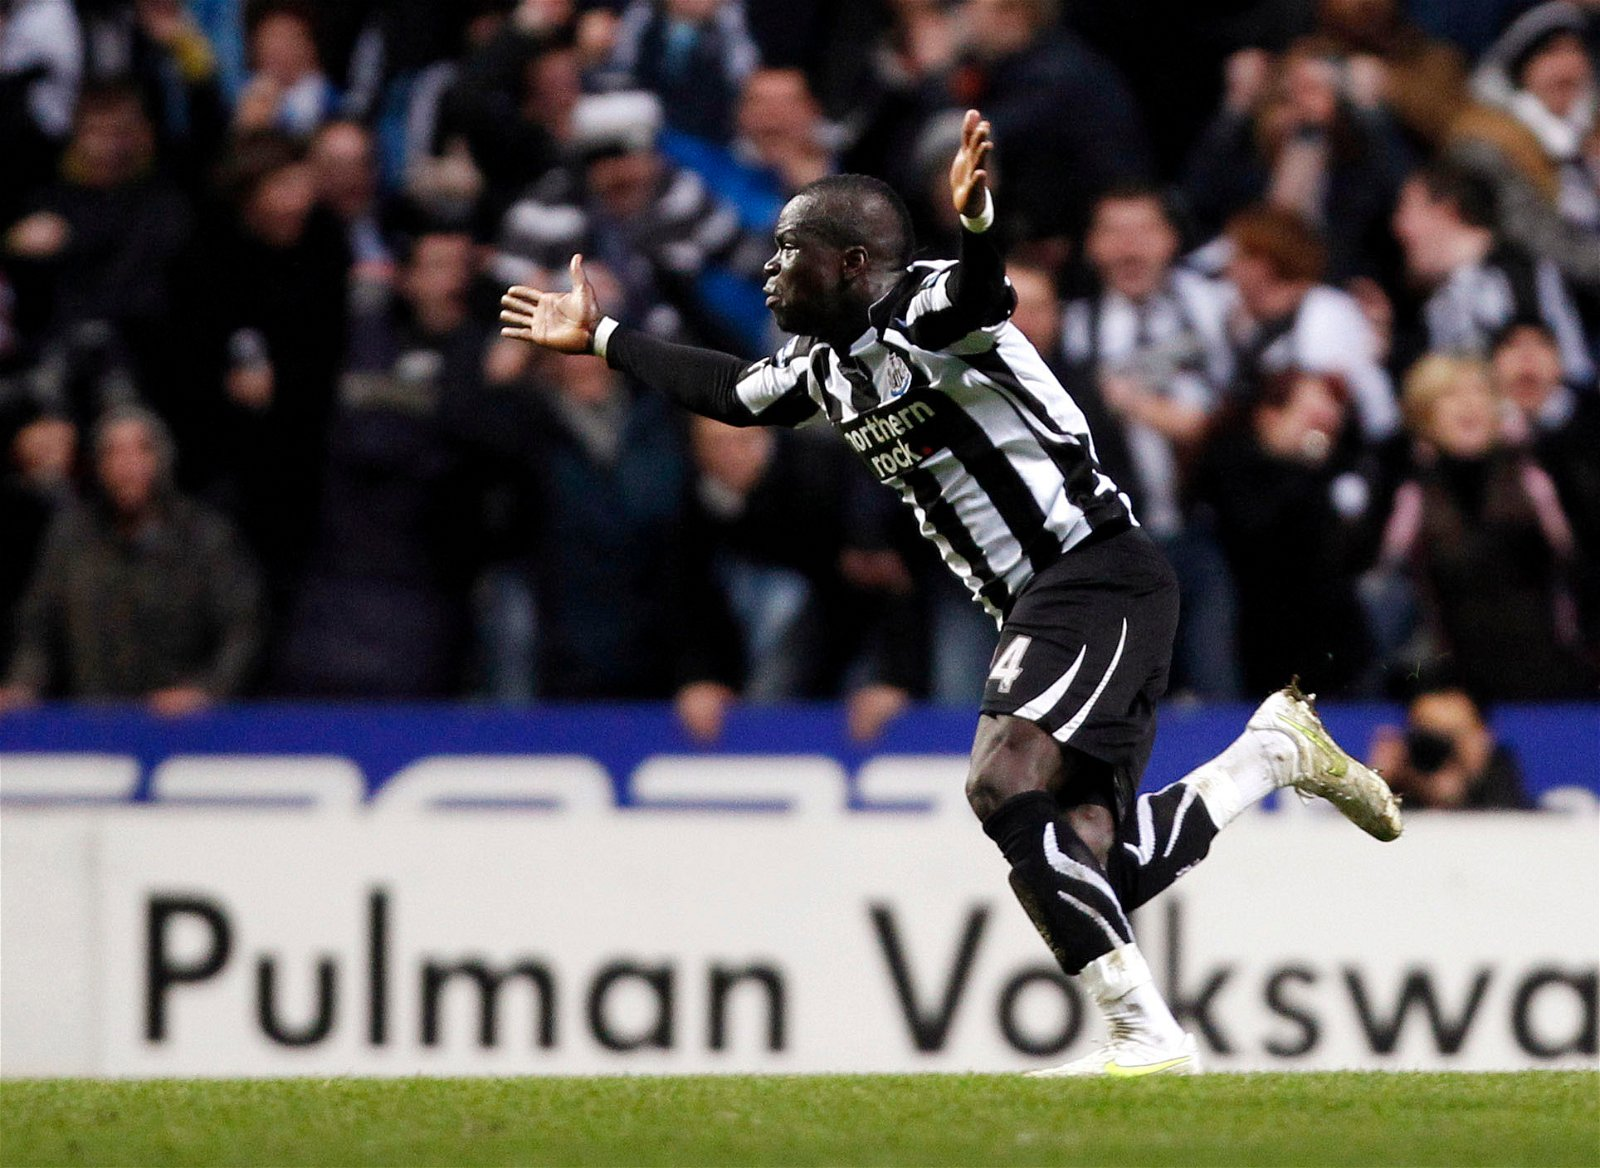 The Match: Newcastle stun Arsenal with famous comeback